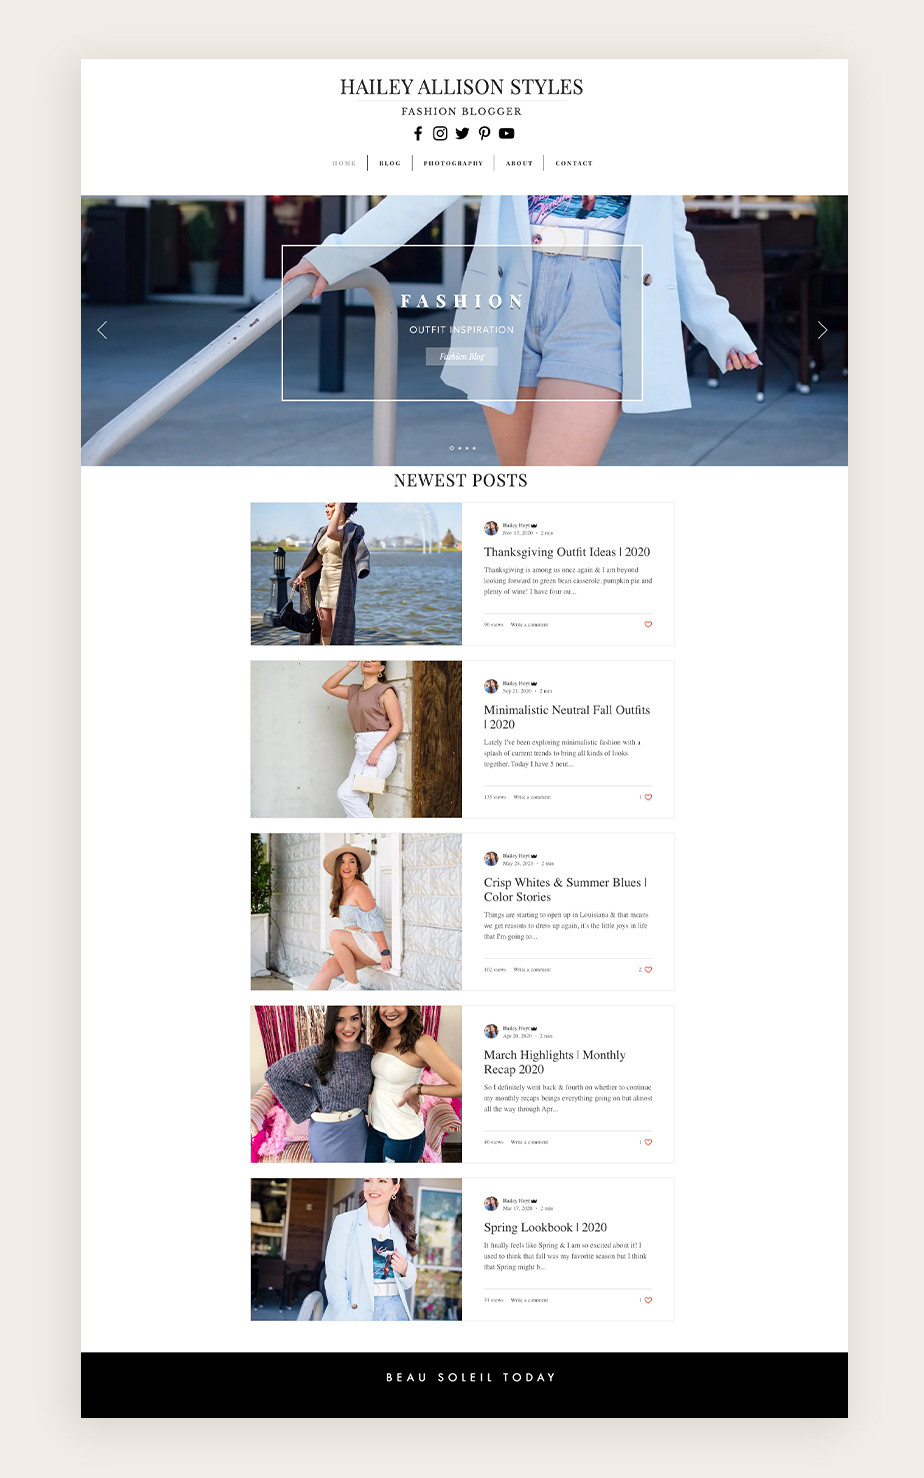 fashion blog example by Haily Allison Styles